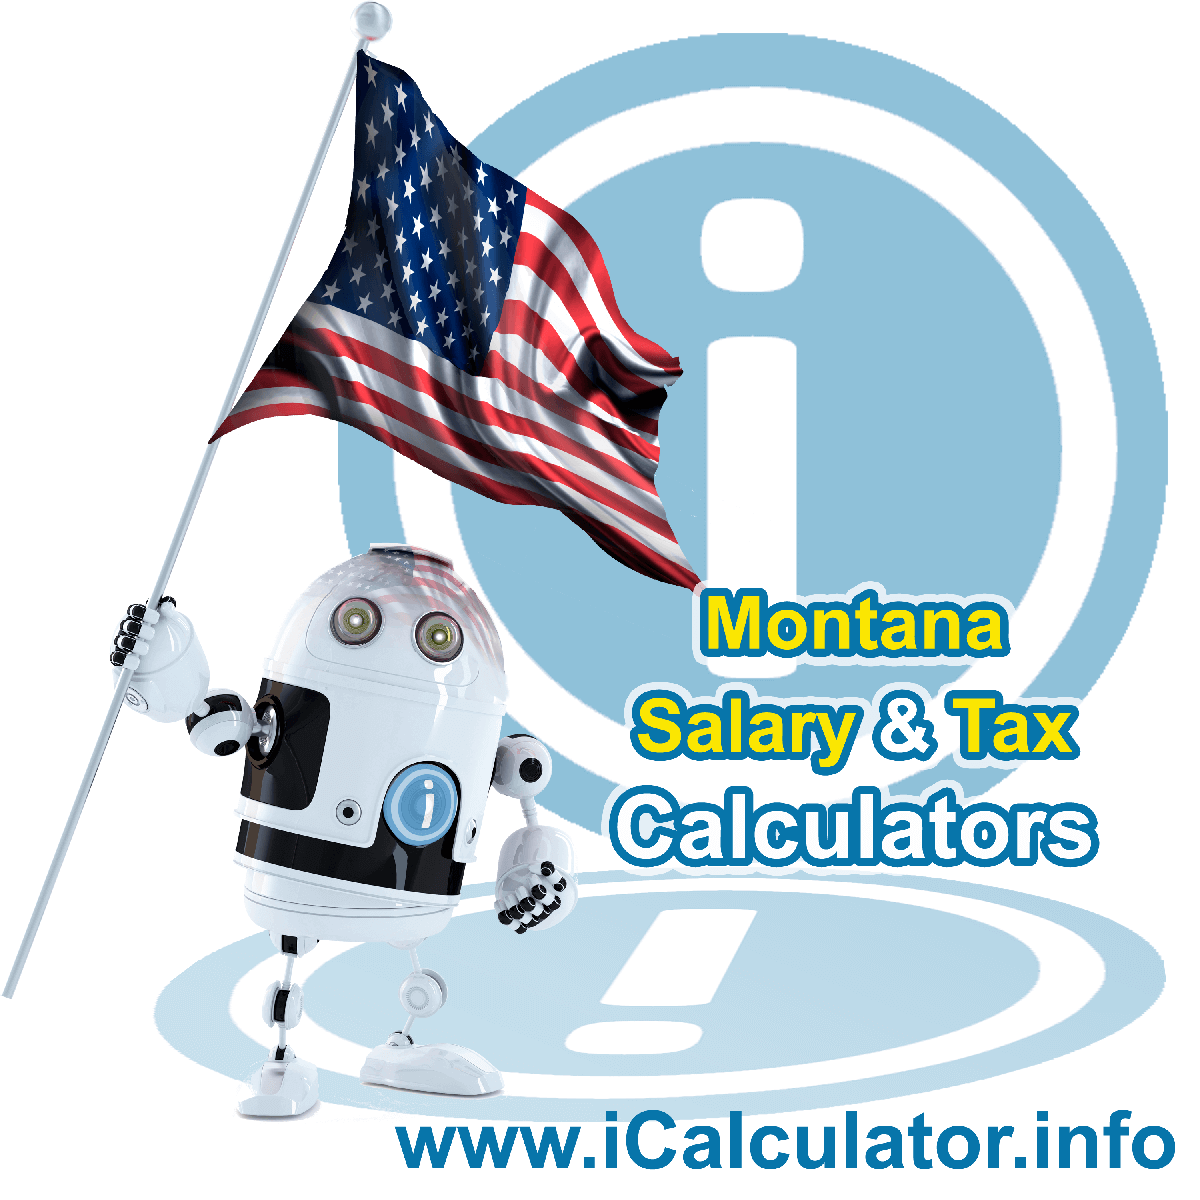 Montana Salary Calculator 2019 | iCalculator | The Montana Salary Calculator allows you to quickly calculate your salary after tax including Montana State Tax, Federal State Tax, Medicare Deductions, Social Security, Capital Gains and other income tax and salary deductions complete with supporting Montana state tax tables